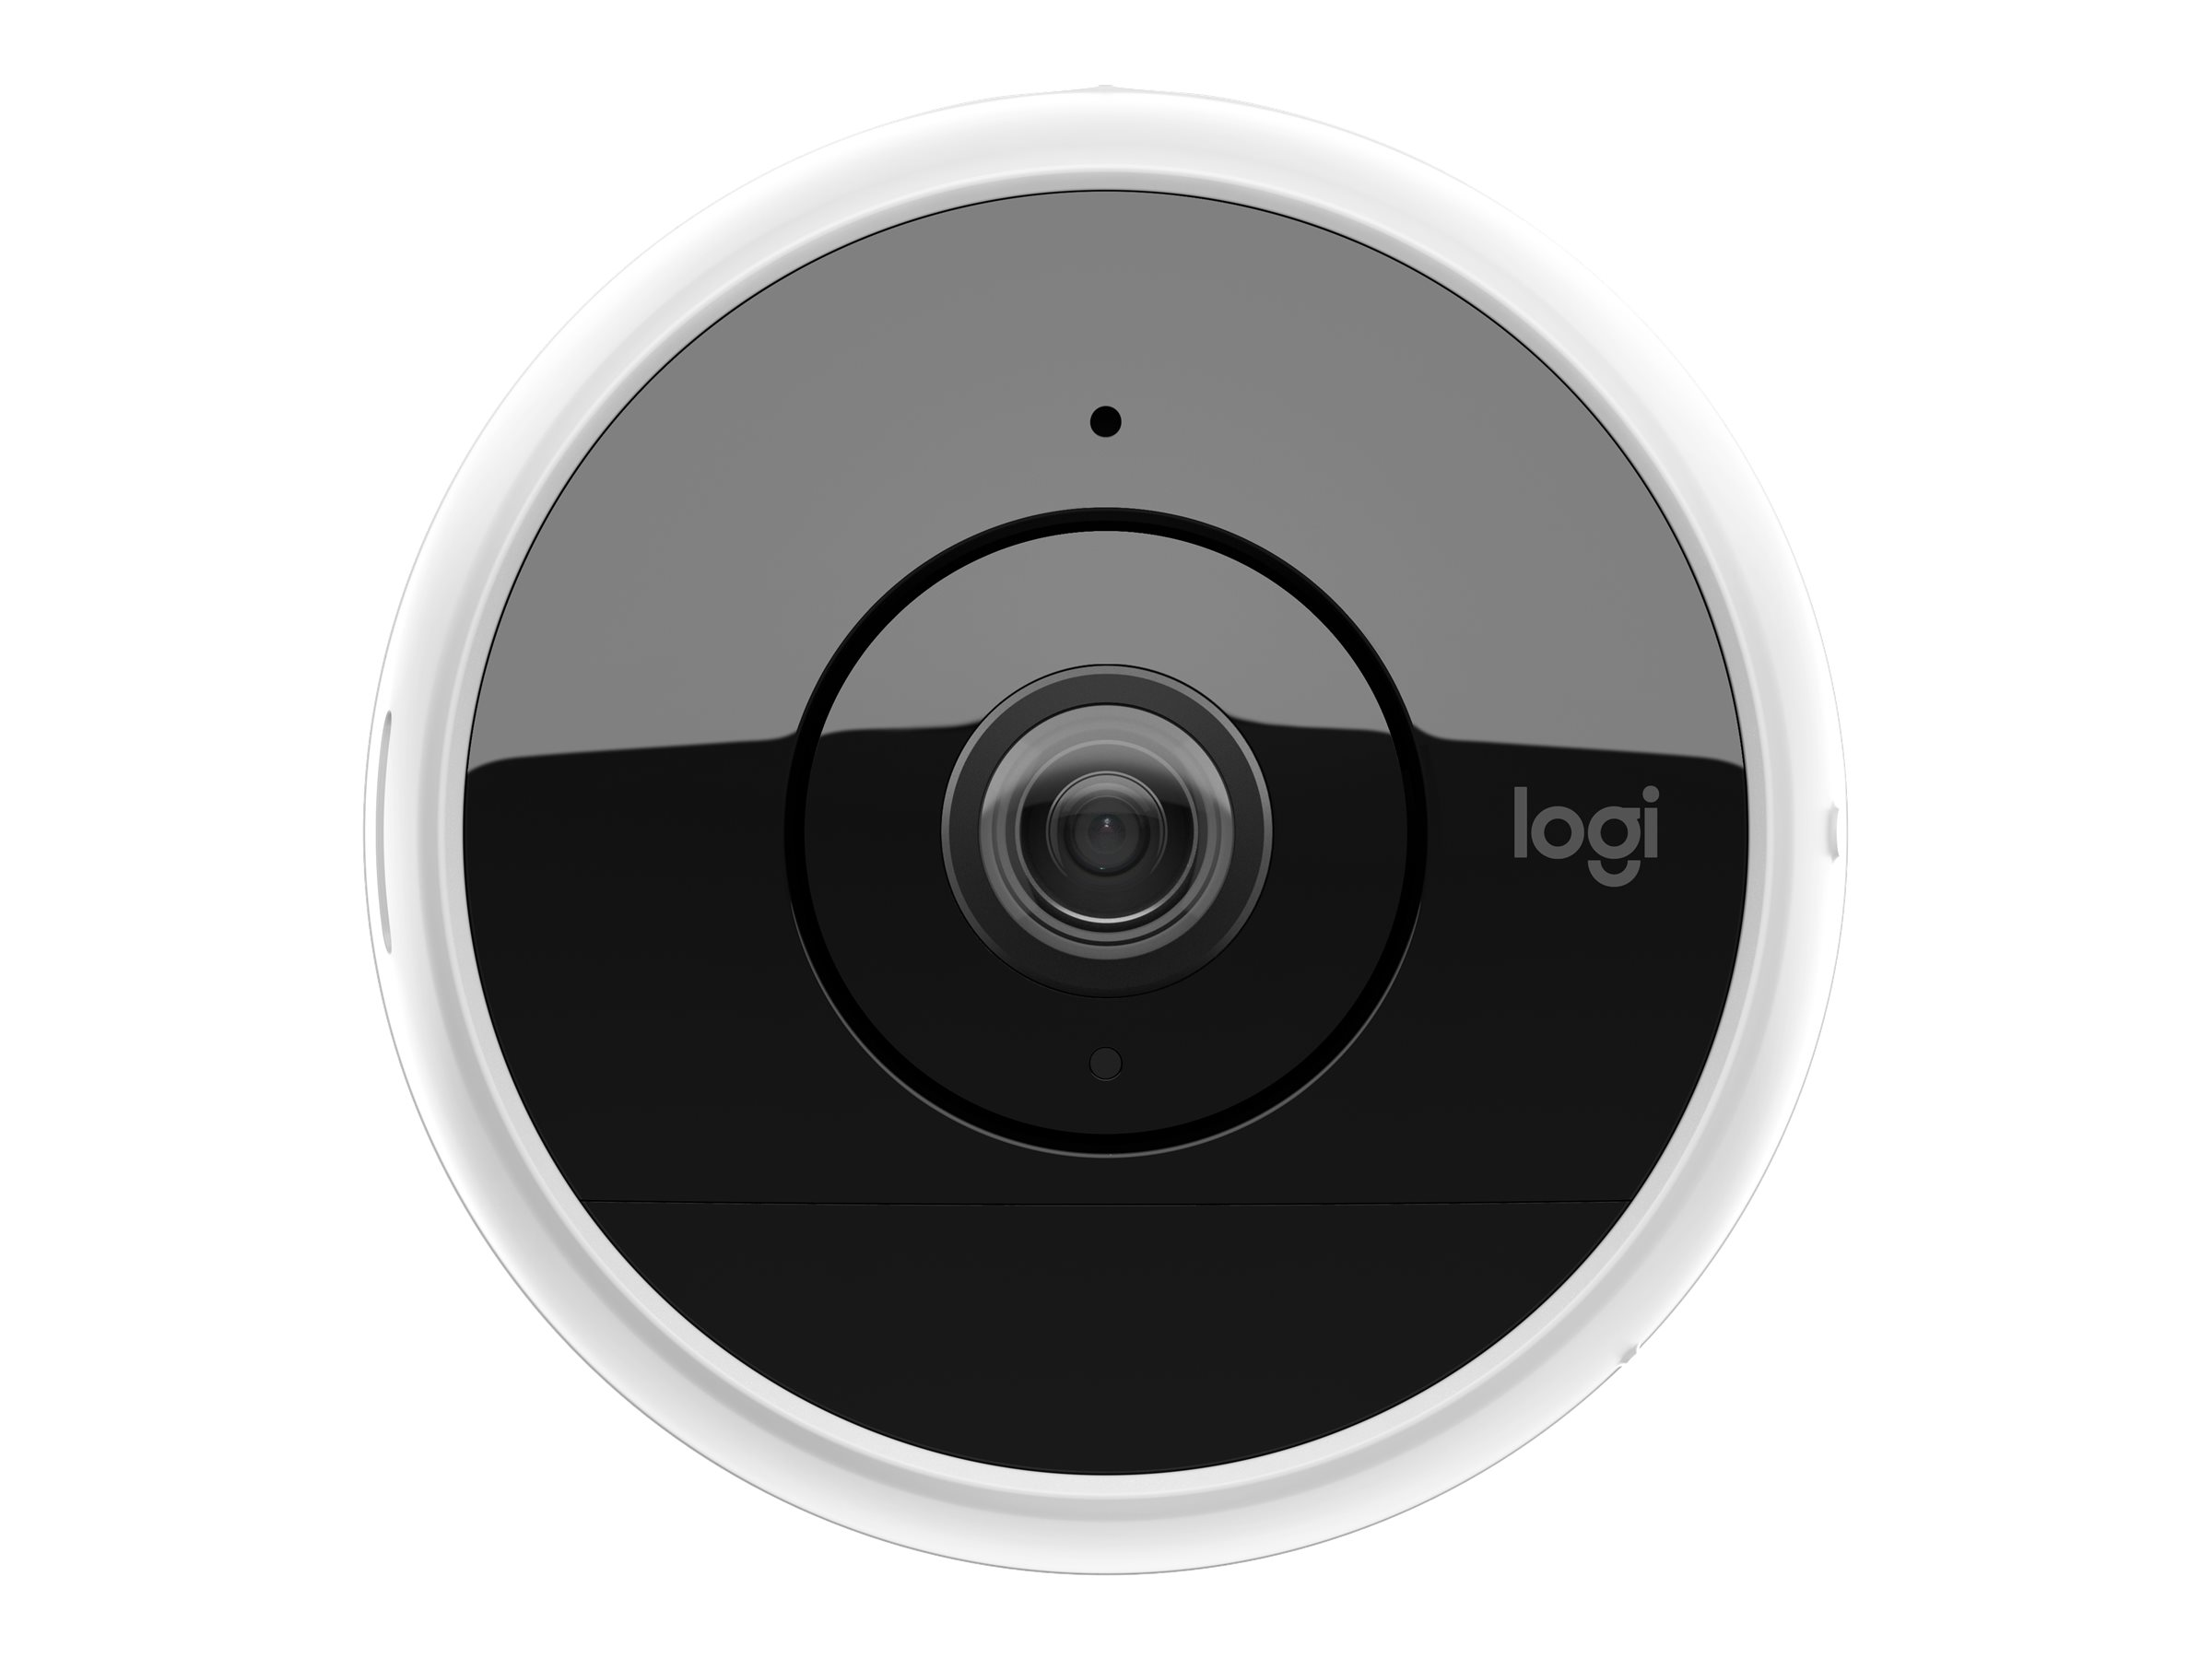 Image for Logitech Circle 2 - network surveillance camera from Circuit City